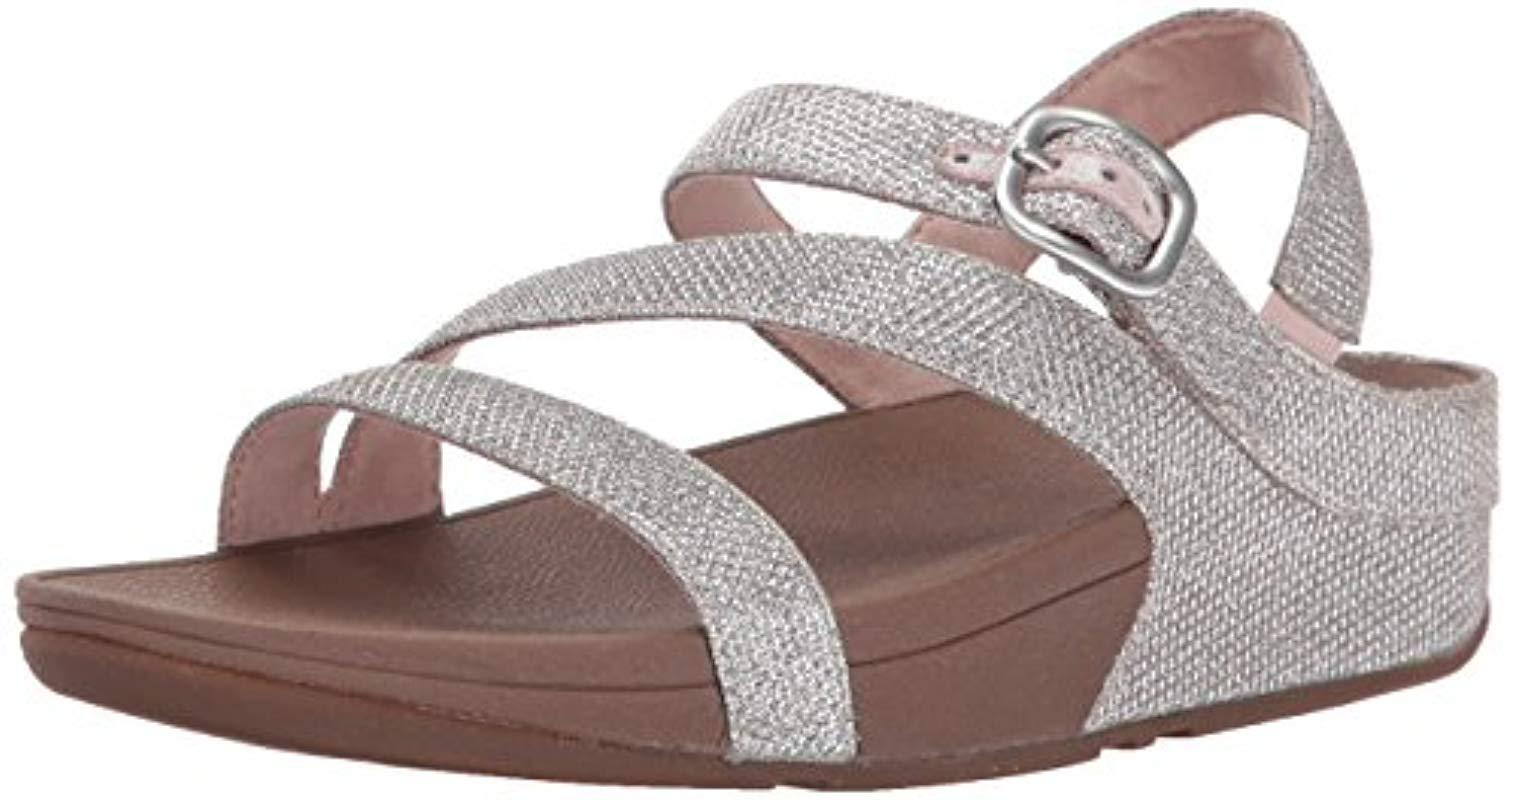 ea7e5232c75c6f Lyst - Fitflop The Skinny Sparkle Z-strap Sandal Flip Flop